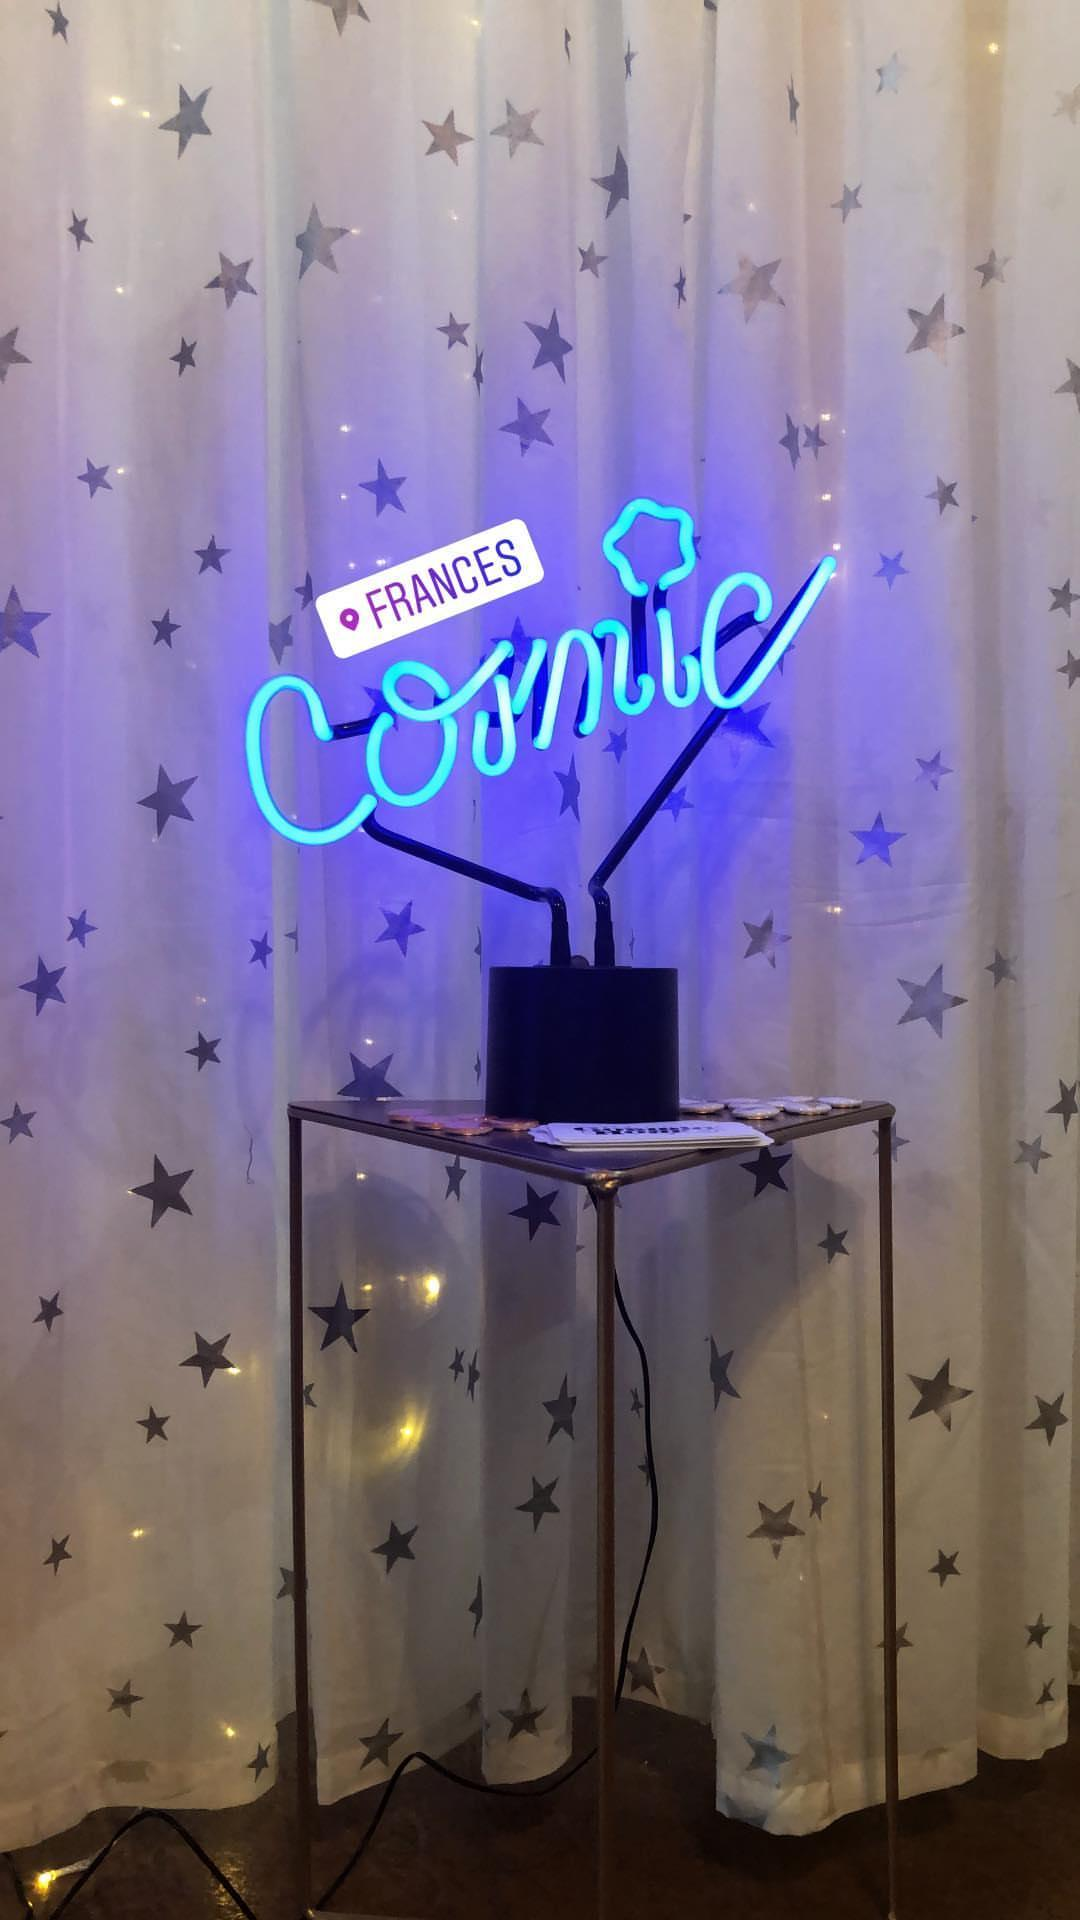 Cosmic Hour's set up at Frances boutique in Phoenix, AZ